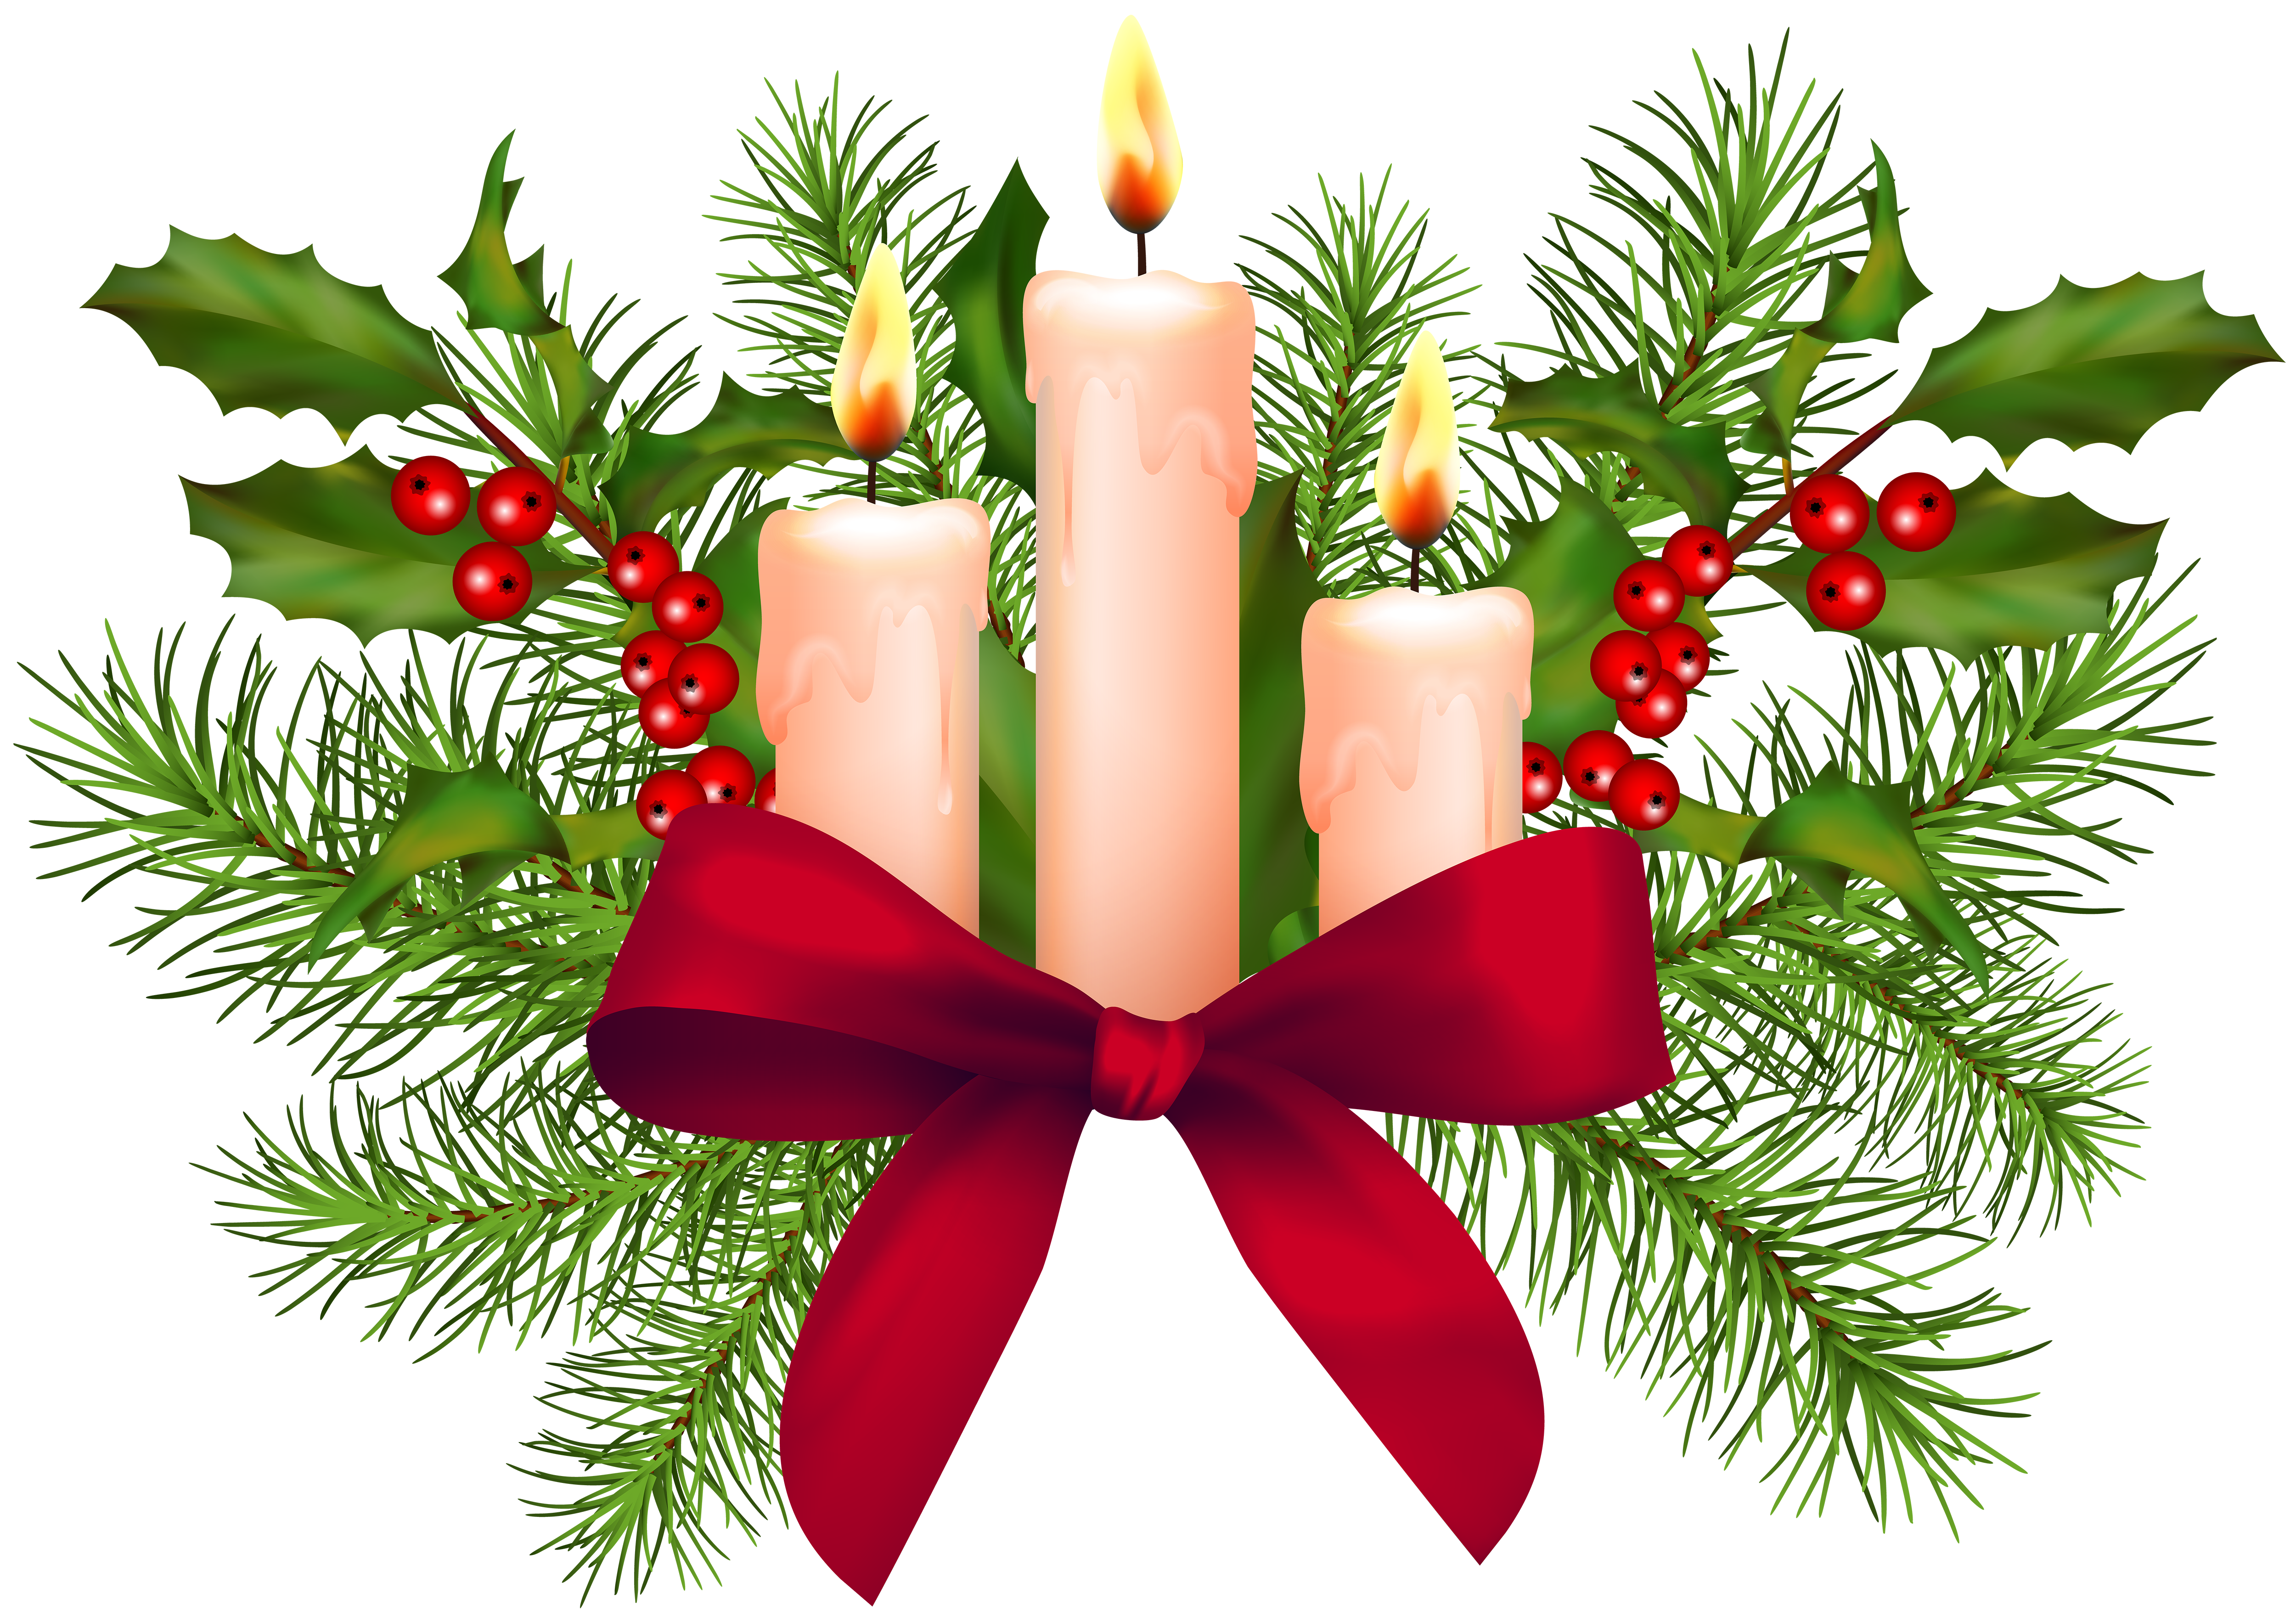 Christmas candles transparent png. Holly clipart candle